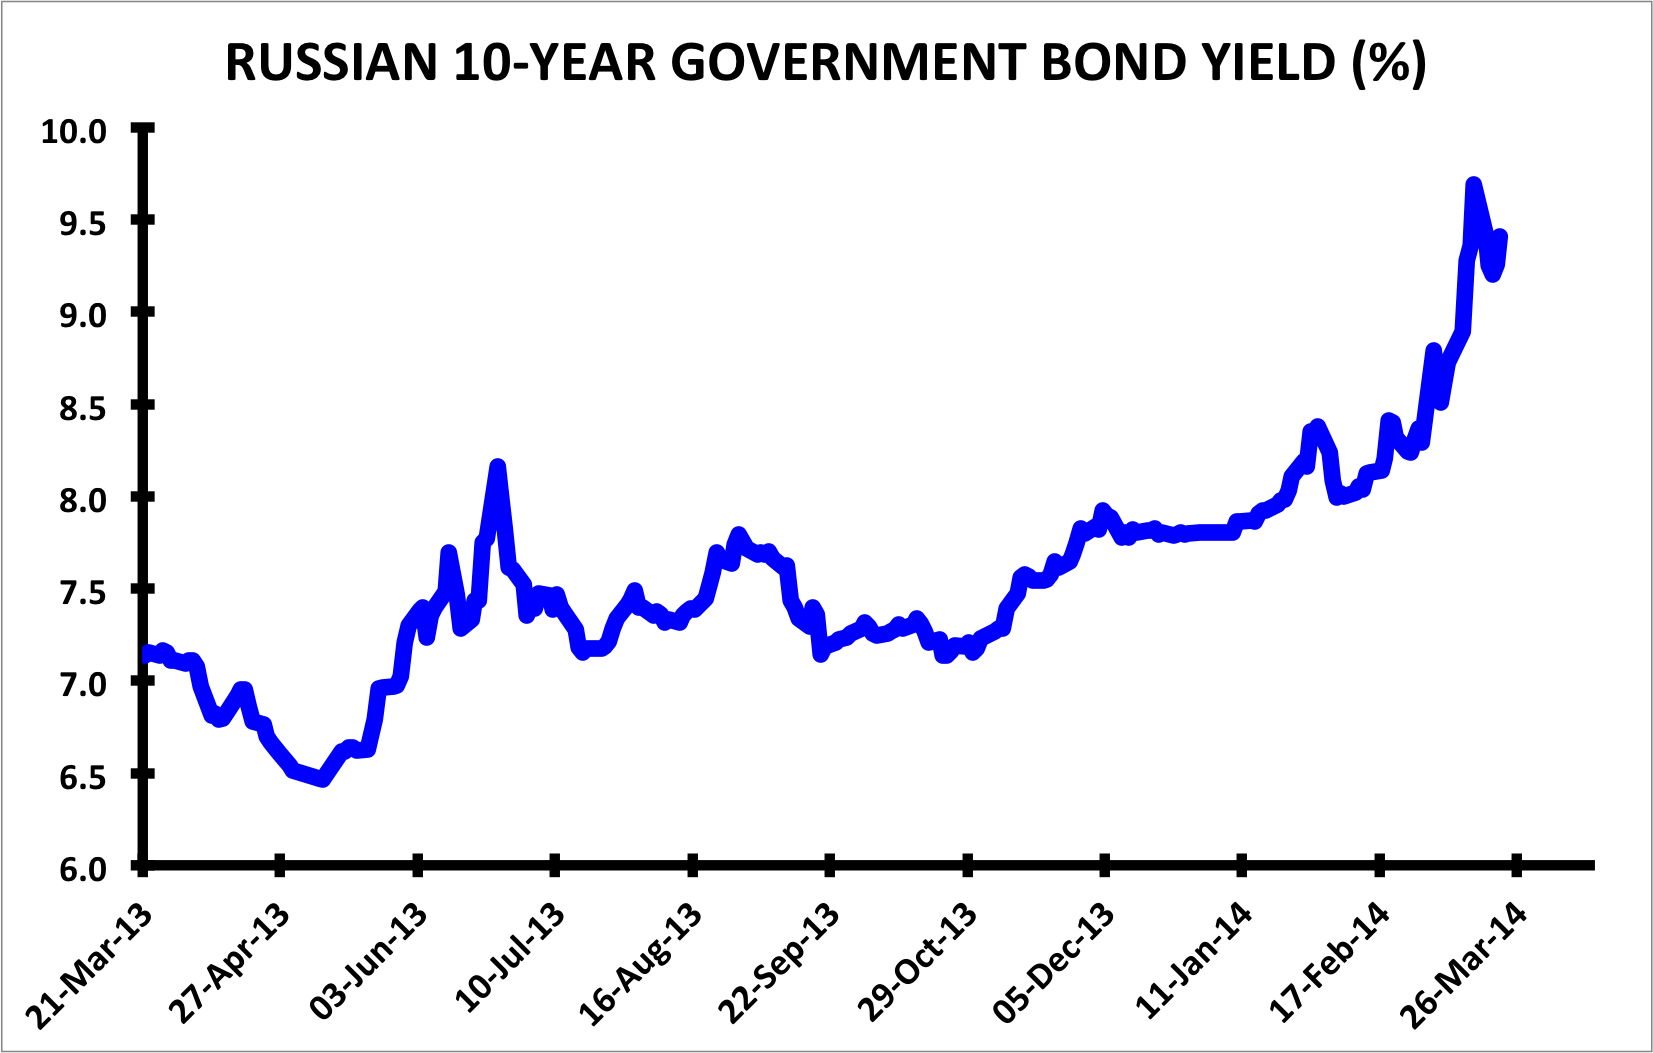 Russia 10-year government bond yield